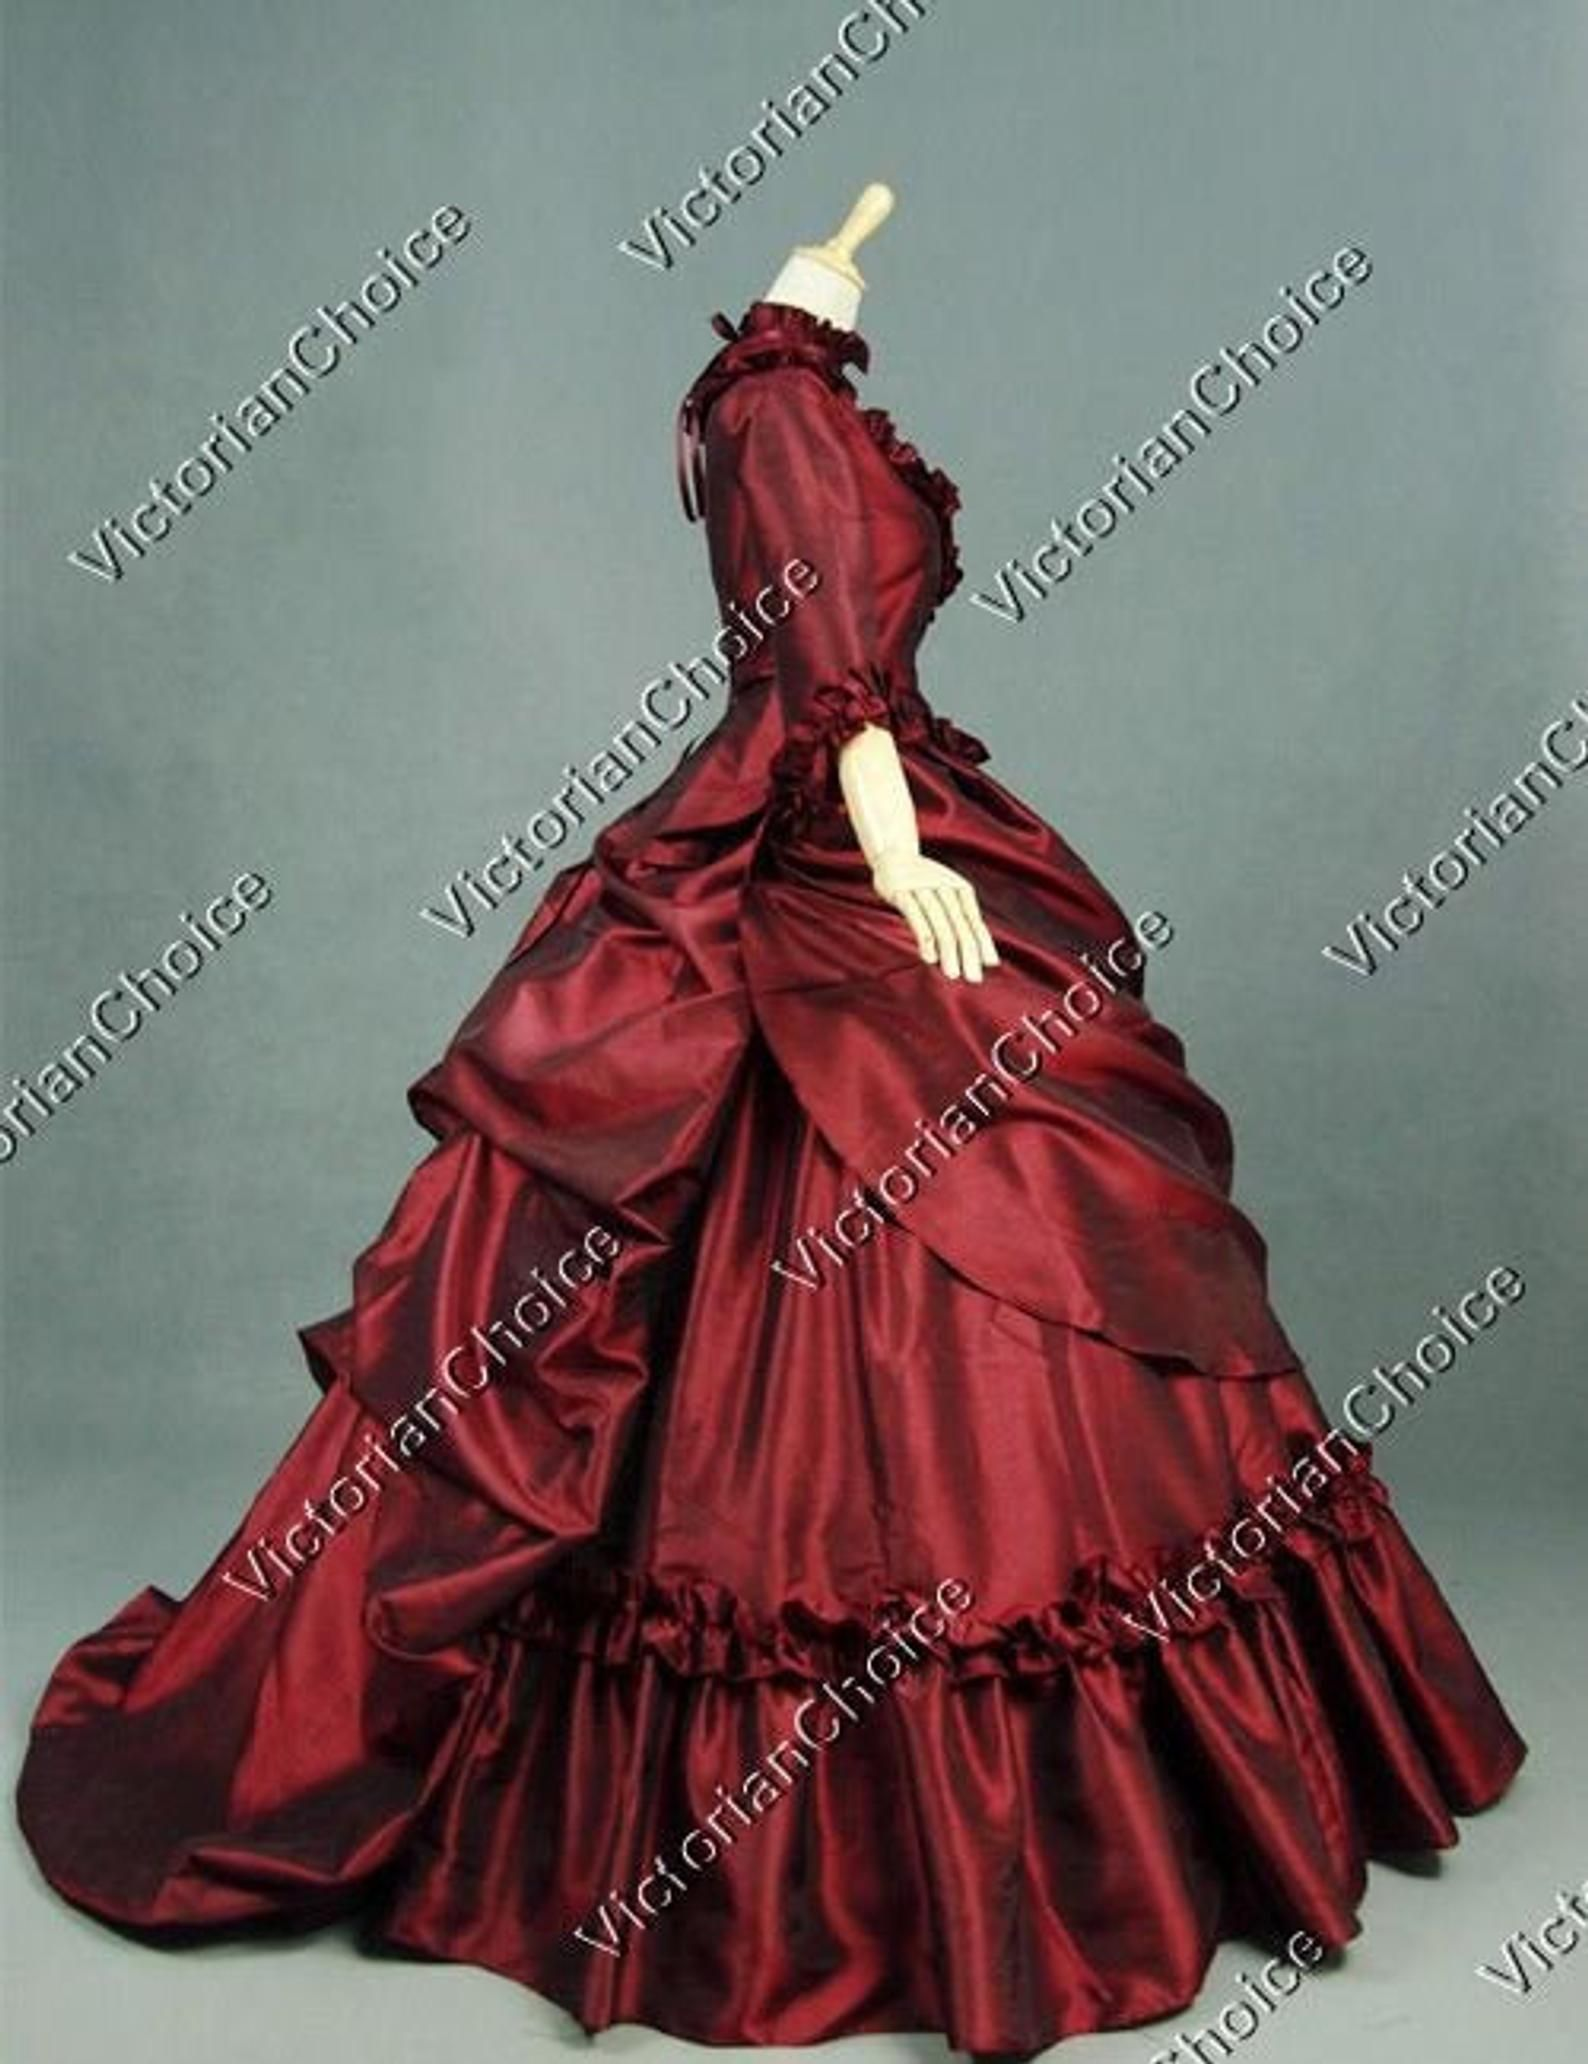 Victorian Bustle Dress Christmas Holiday Gown Vintage Prom Dress Mrs Claus Bustle 5 Pc Dress Masquerade Gown Taffeta Theater Costume Masquerade Ball Gowns Masquerade Ball Gown Ball Gowns [ 2064 x 1588 Pixel ]